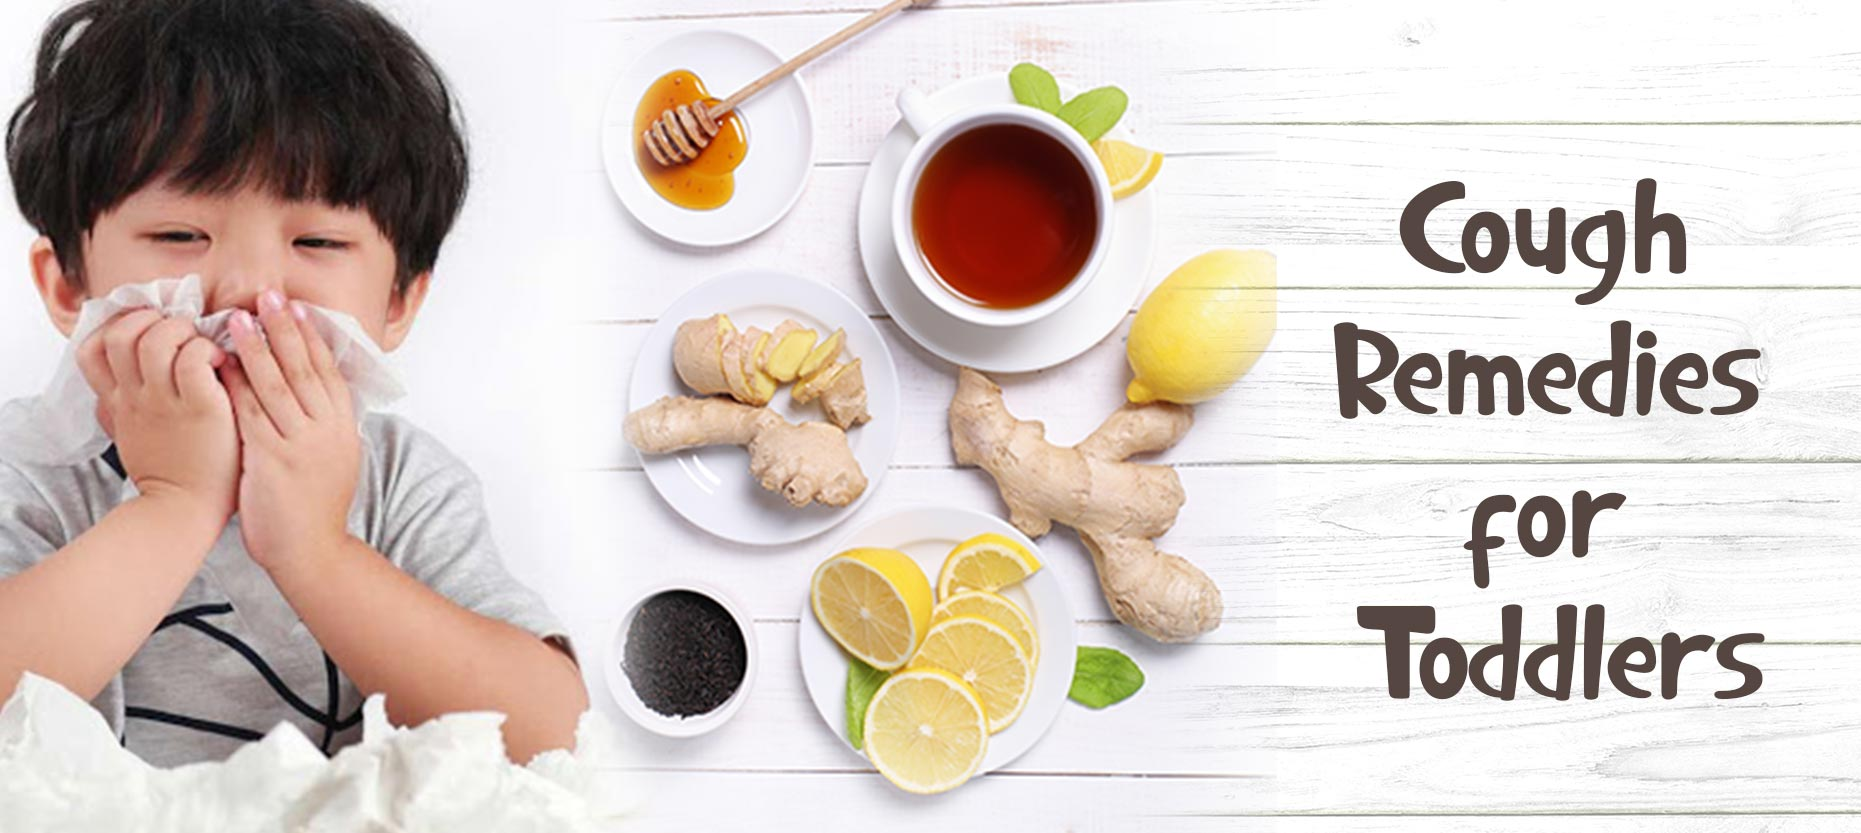 Top Helpful Indian Cough Remedies for Toddlers